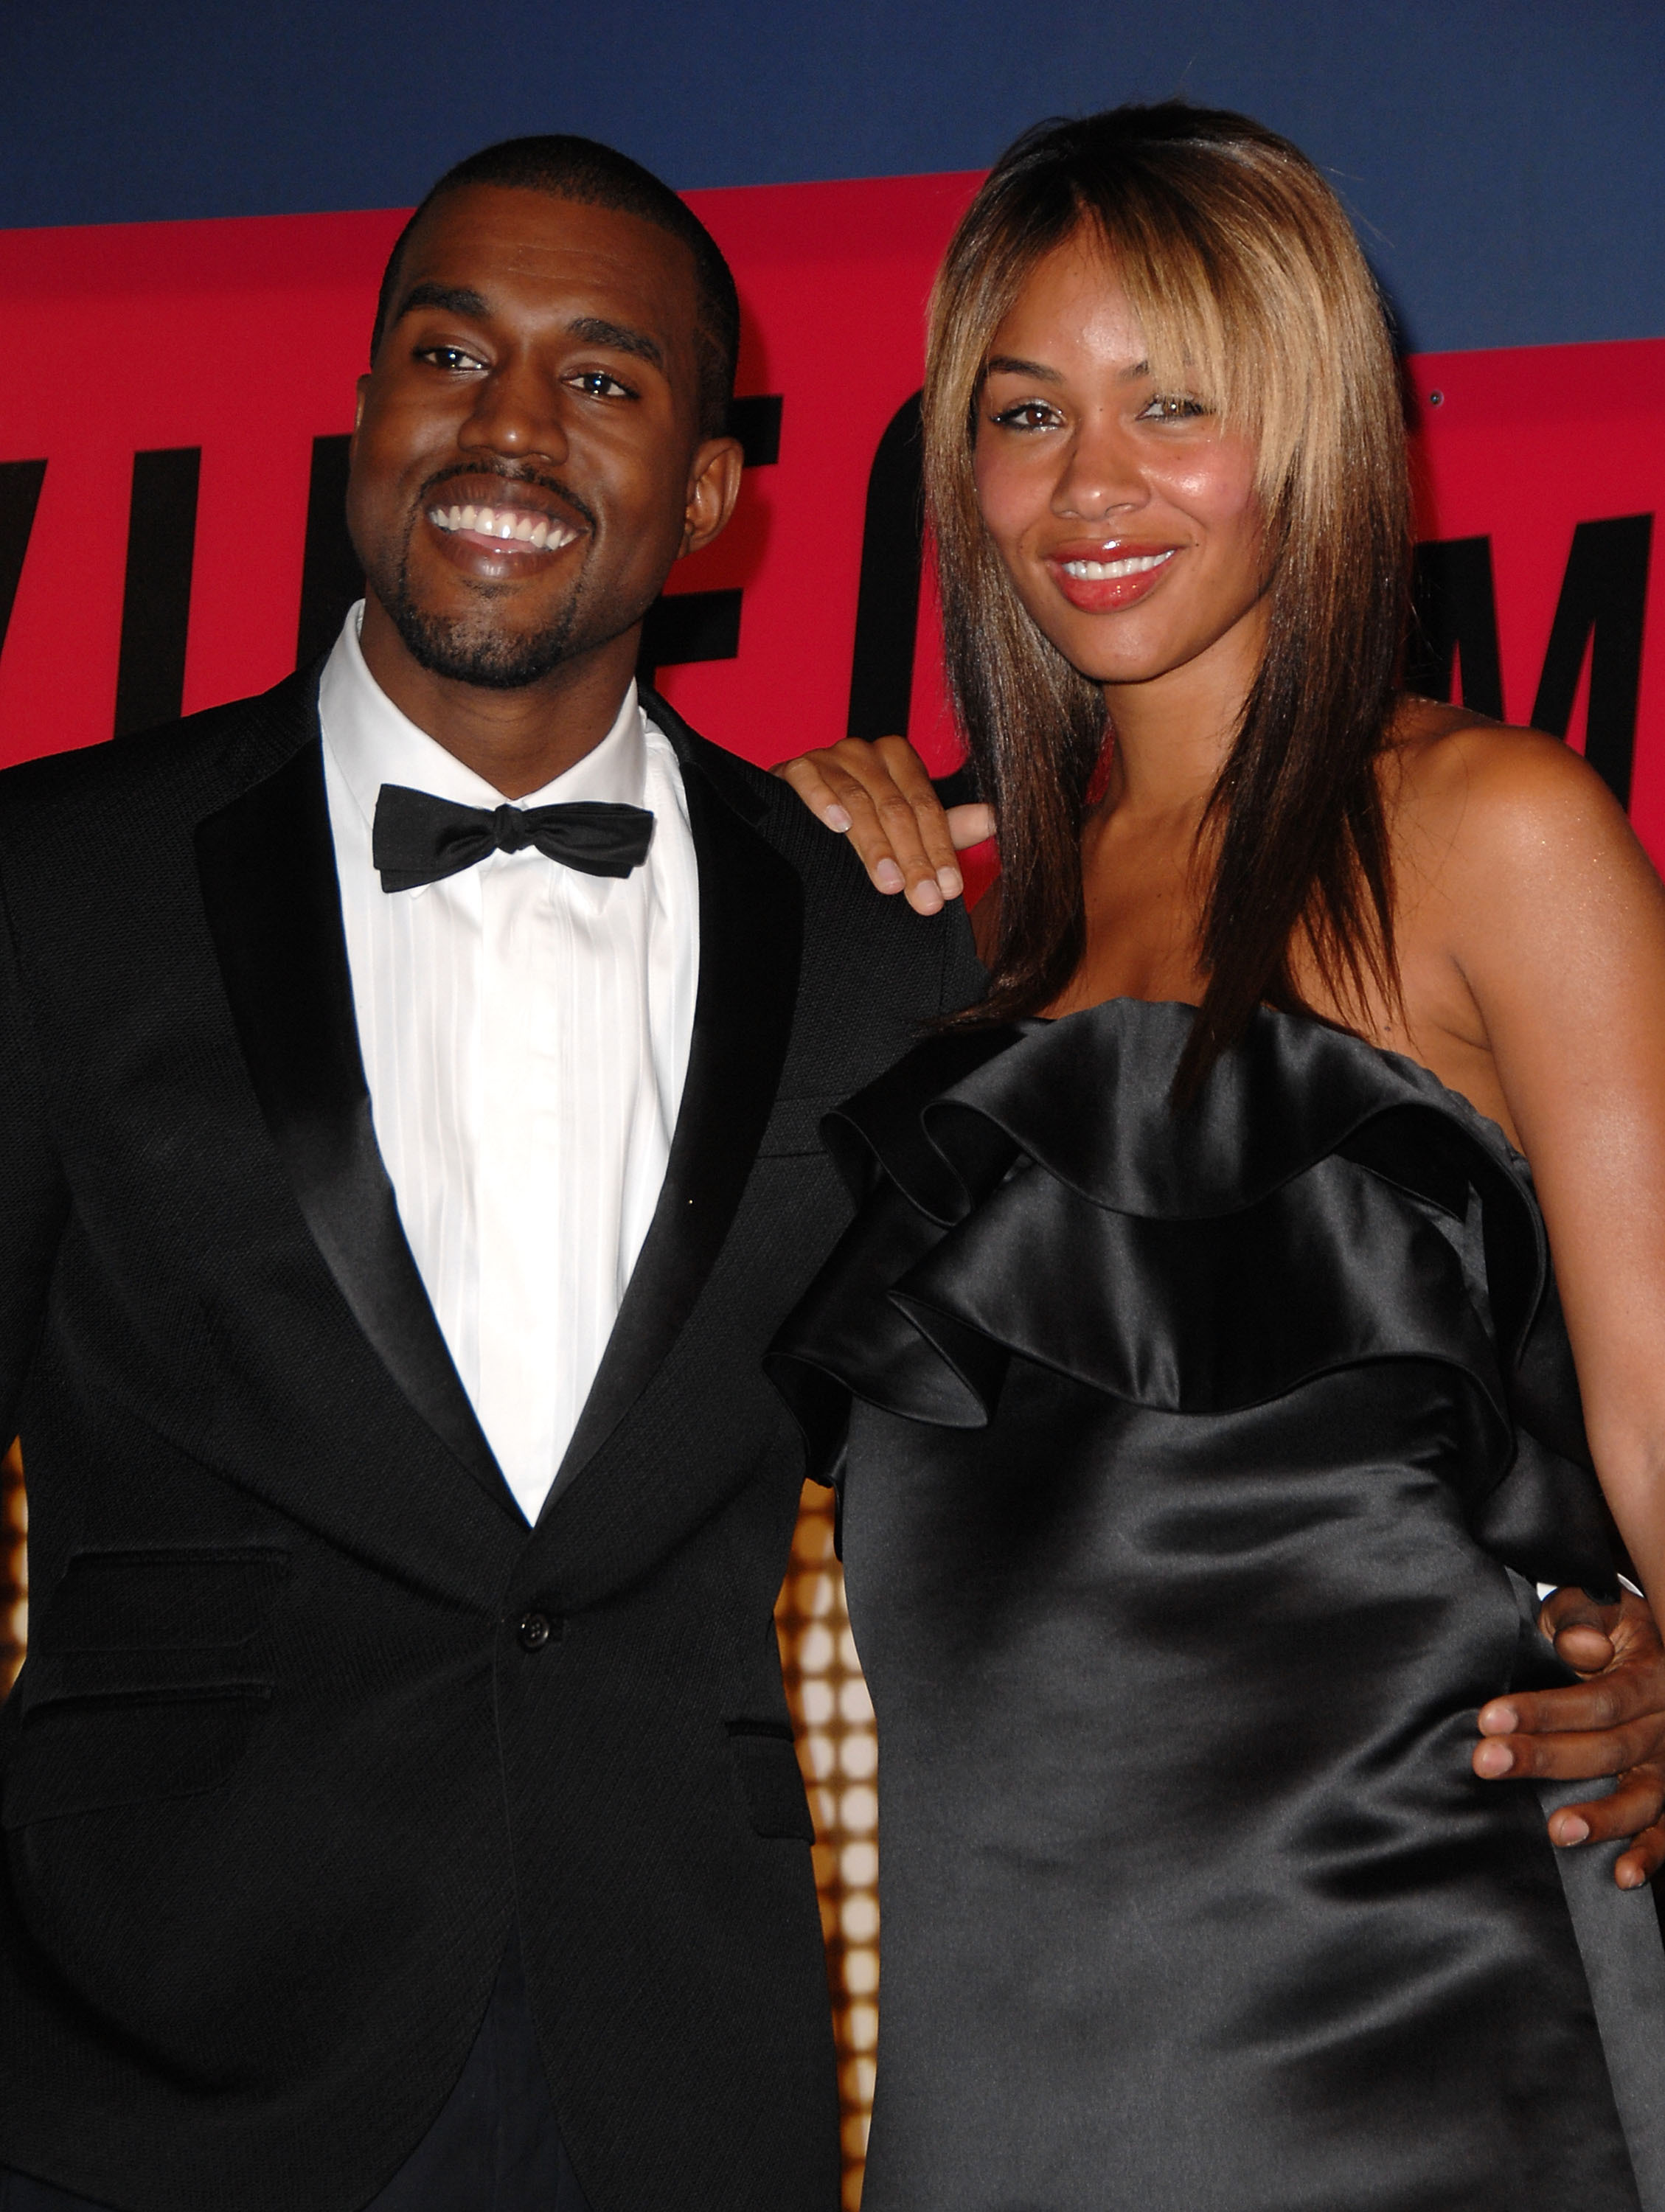 Kanye West and fiancee Alexis Phifer arrive at the 2007 Video Music Awards in Las Vegas on Sept. 9, 2007.